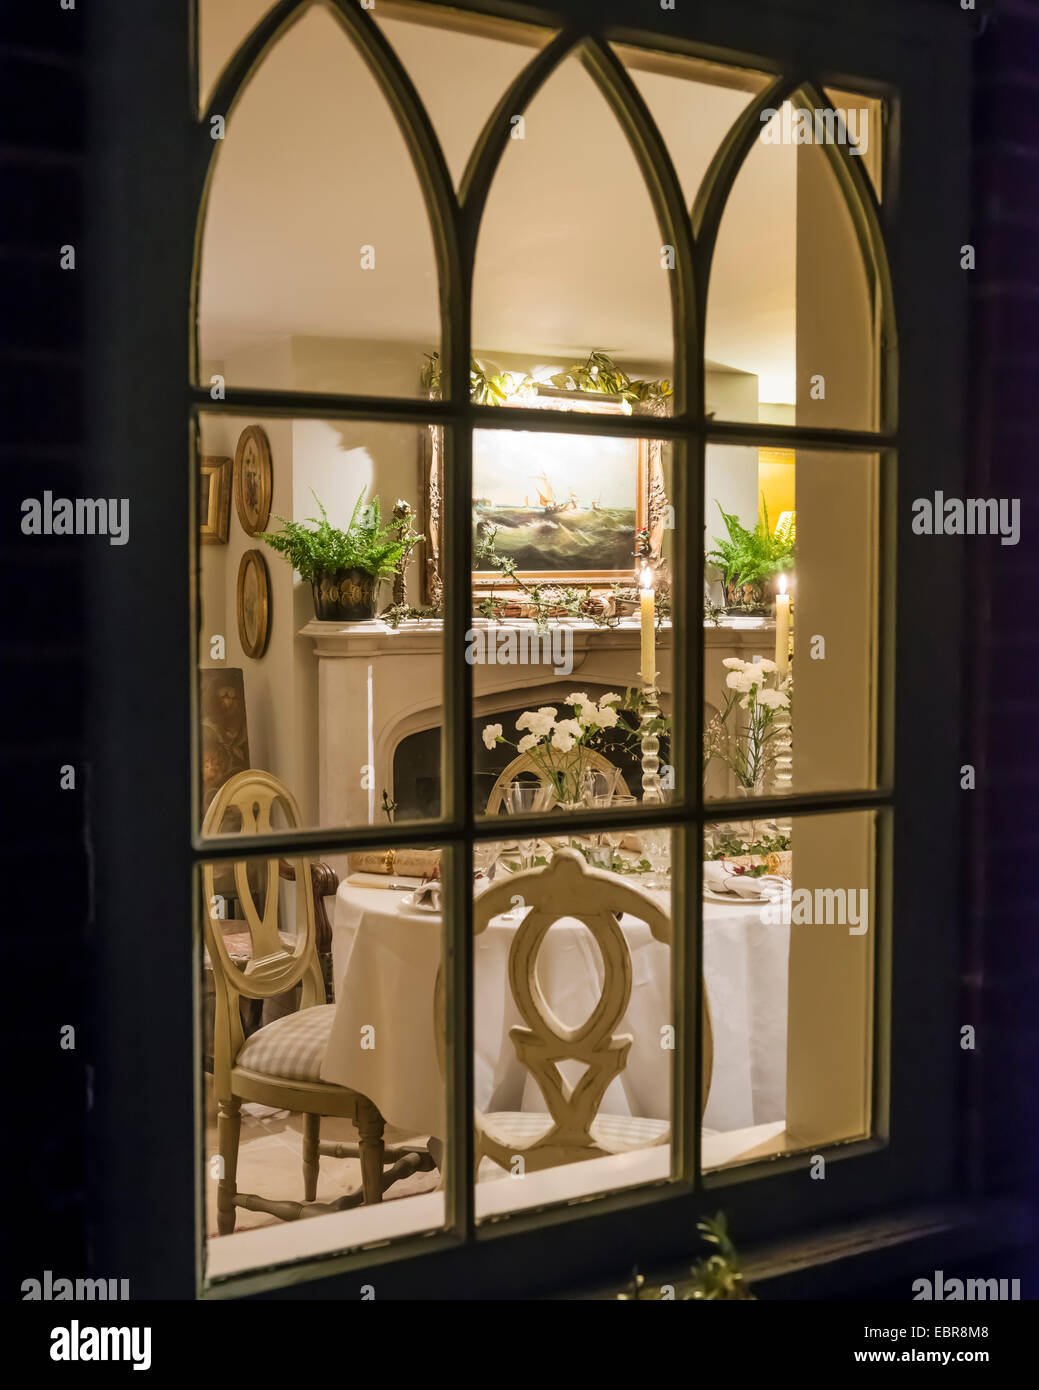 View looking through window to table laid for christmas dinner - Stock Image